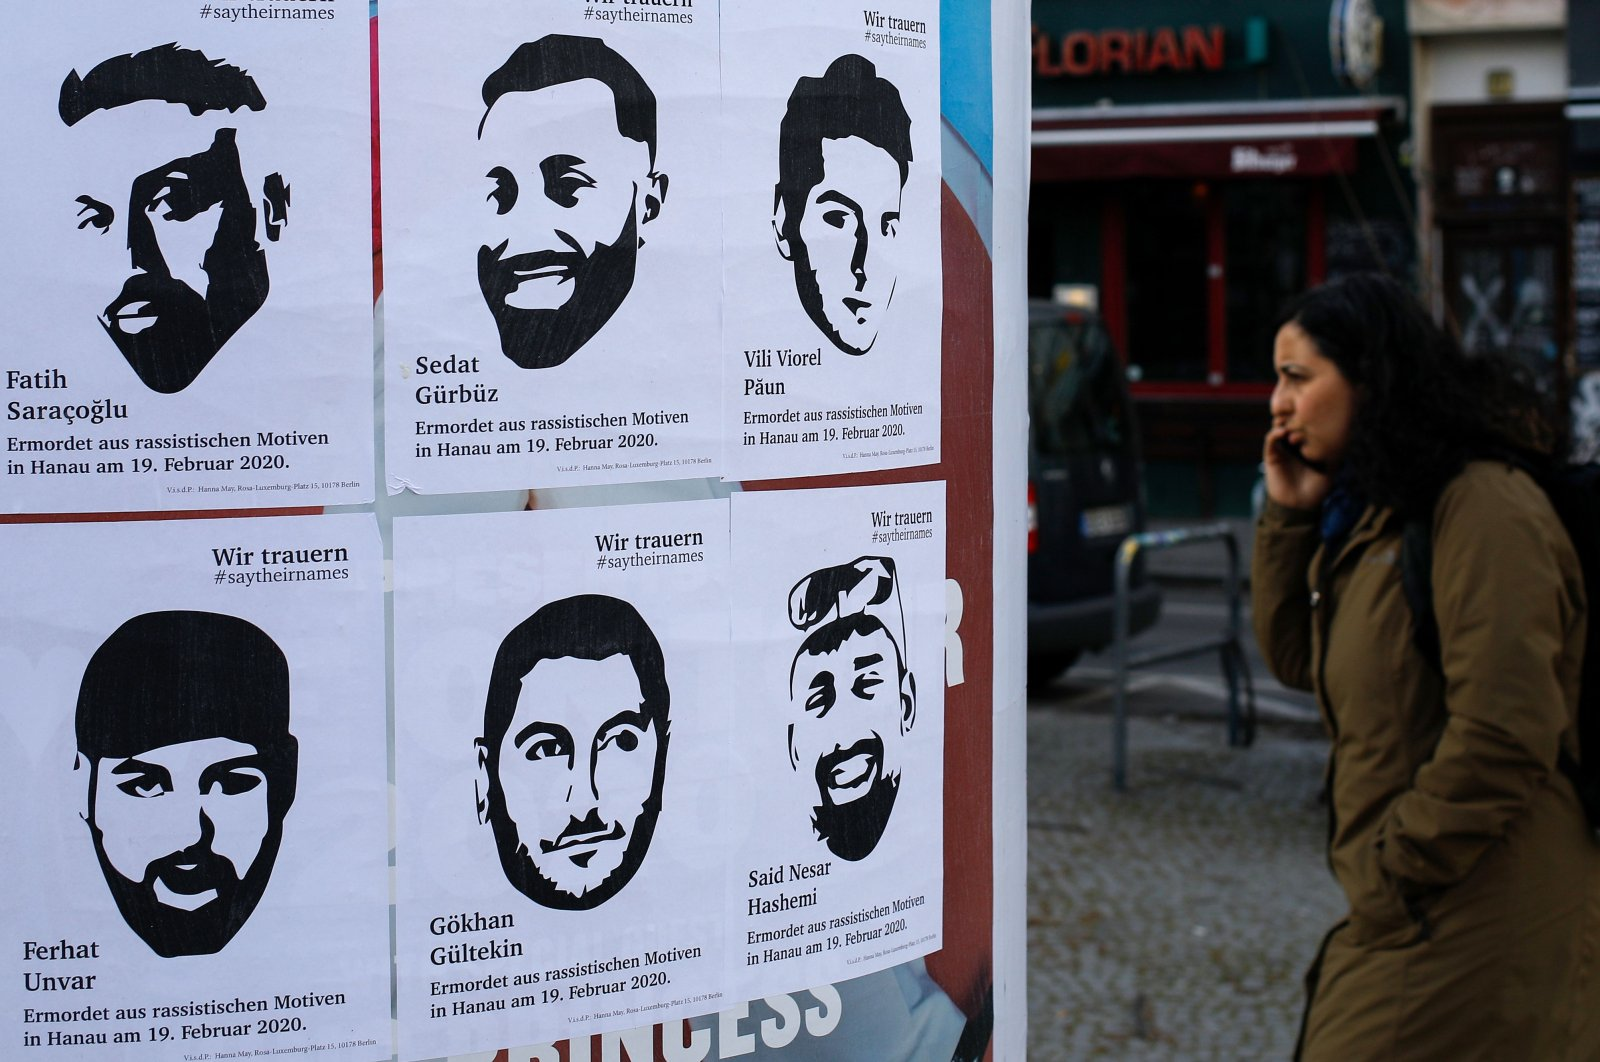 Posters with the pictures and names of victims of a far-right extremist gunman who killed nine people in a racist attack in Hanau, Germany on Feb. 19 can be seen on an advertising column in Berlin's Kreuzberg district, Germany, March 19, 2020. (AFP Photo)